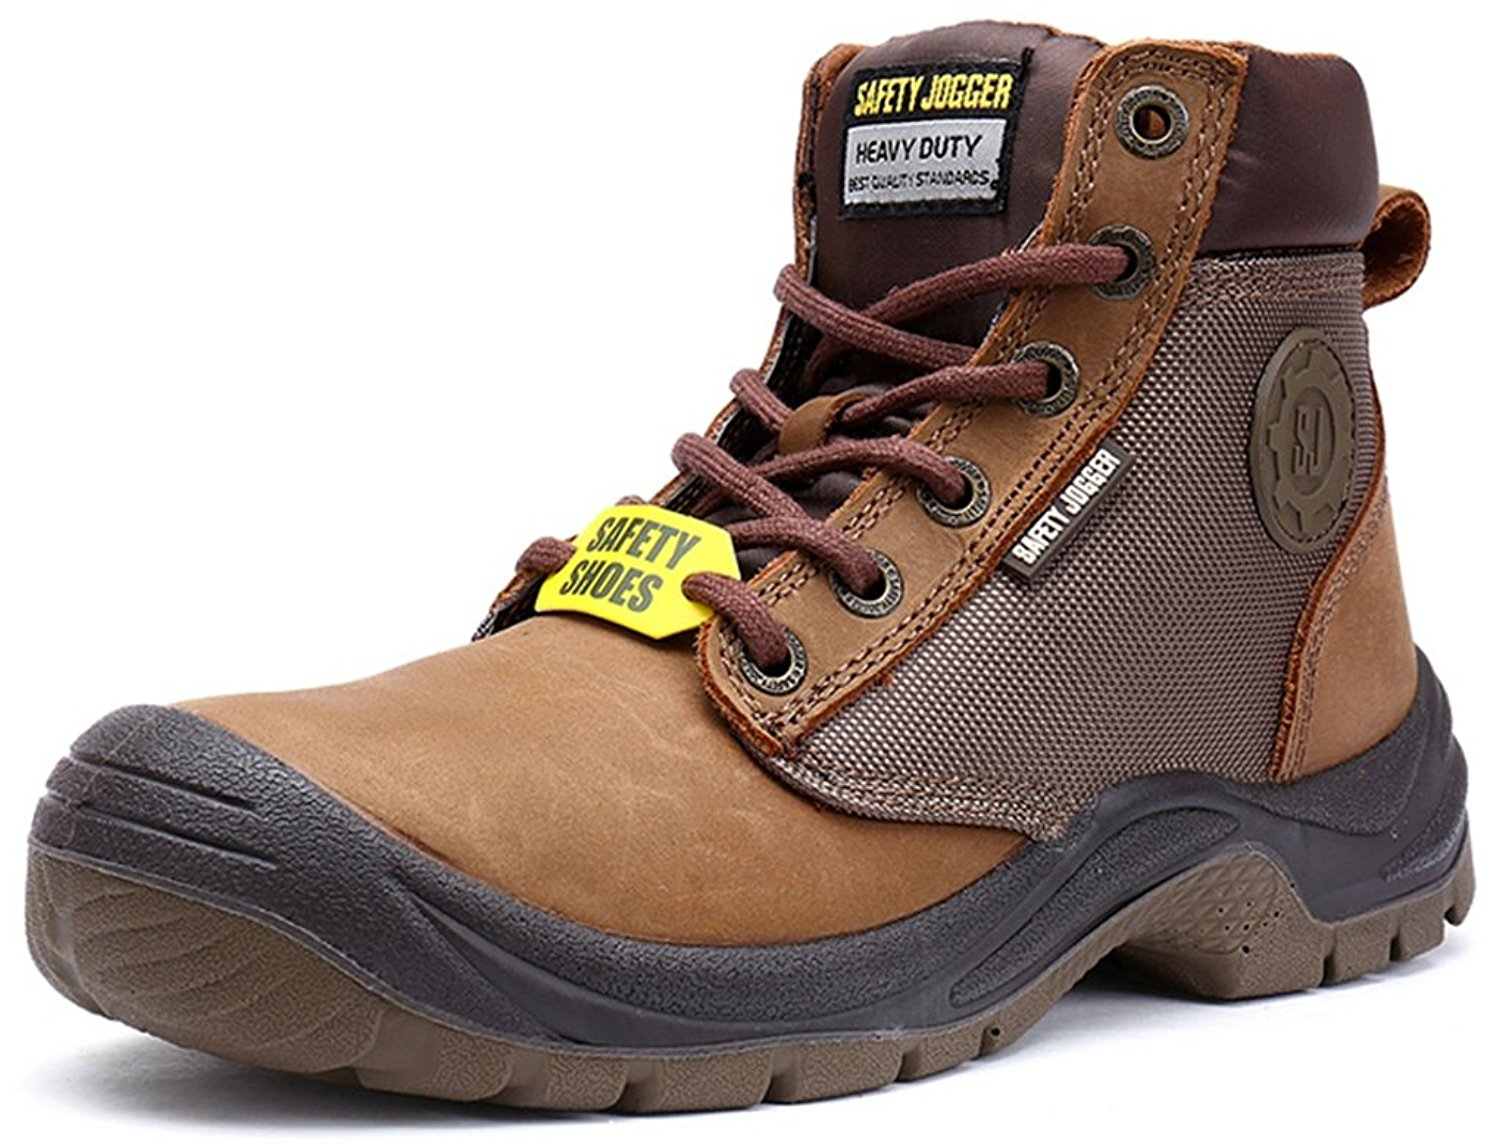 c7a1d65164d72b Get Quotations · Safety Jogger For Work Men's Steel Toe S3 Level Safety  Boots